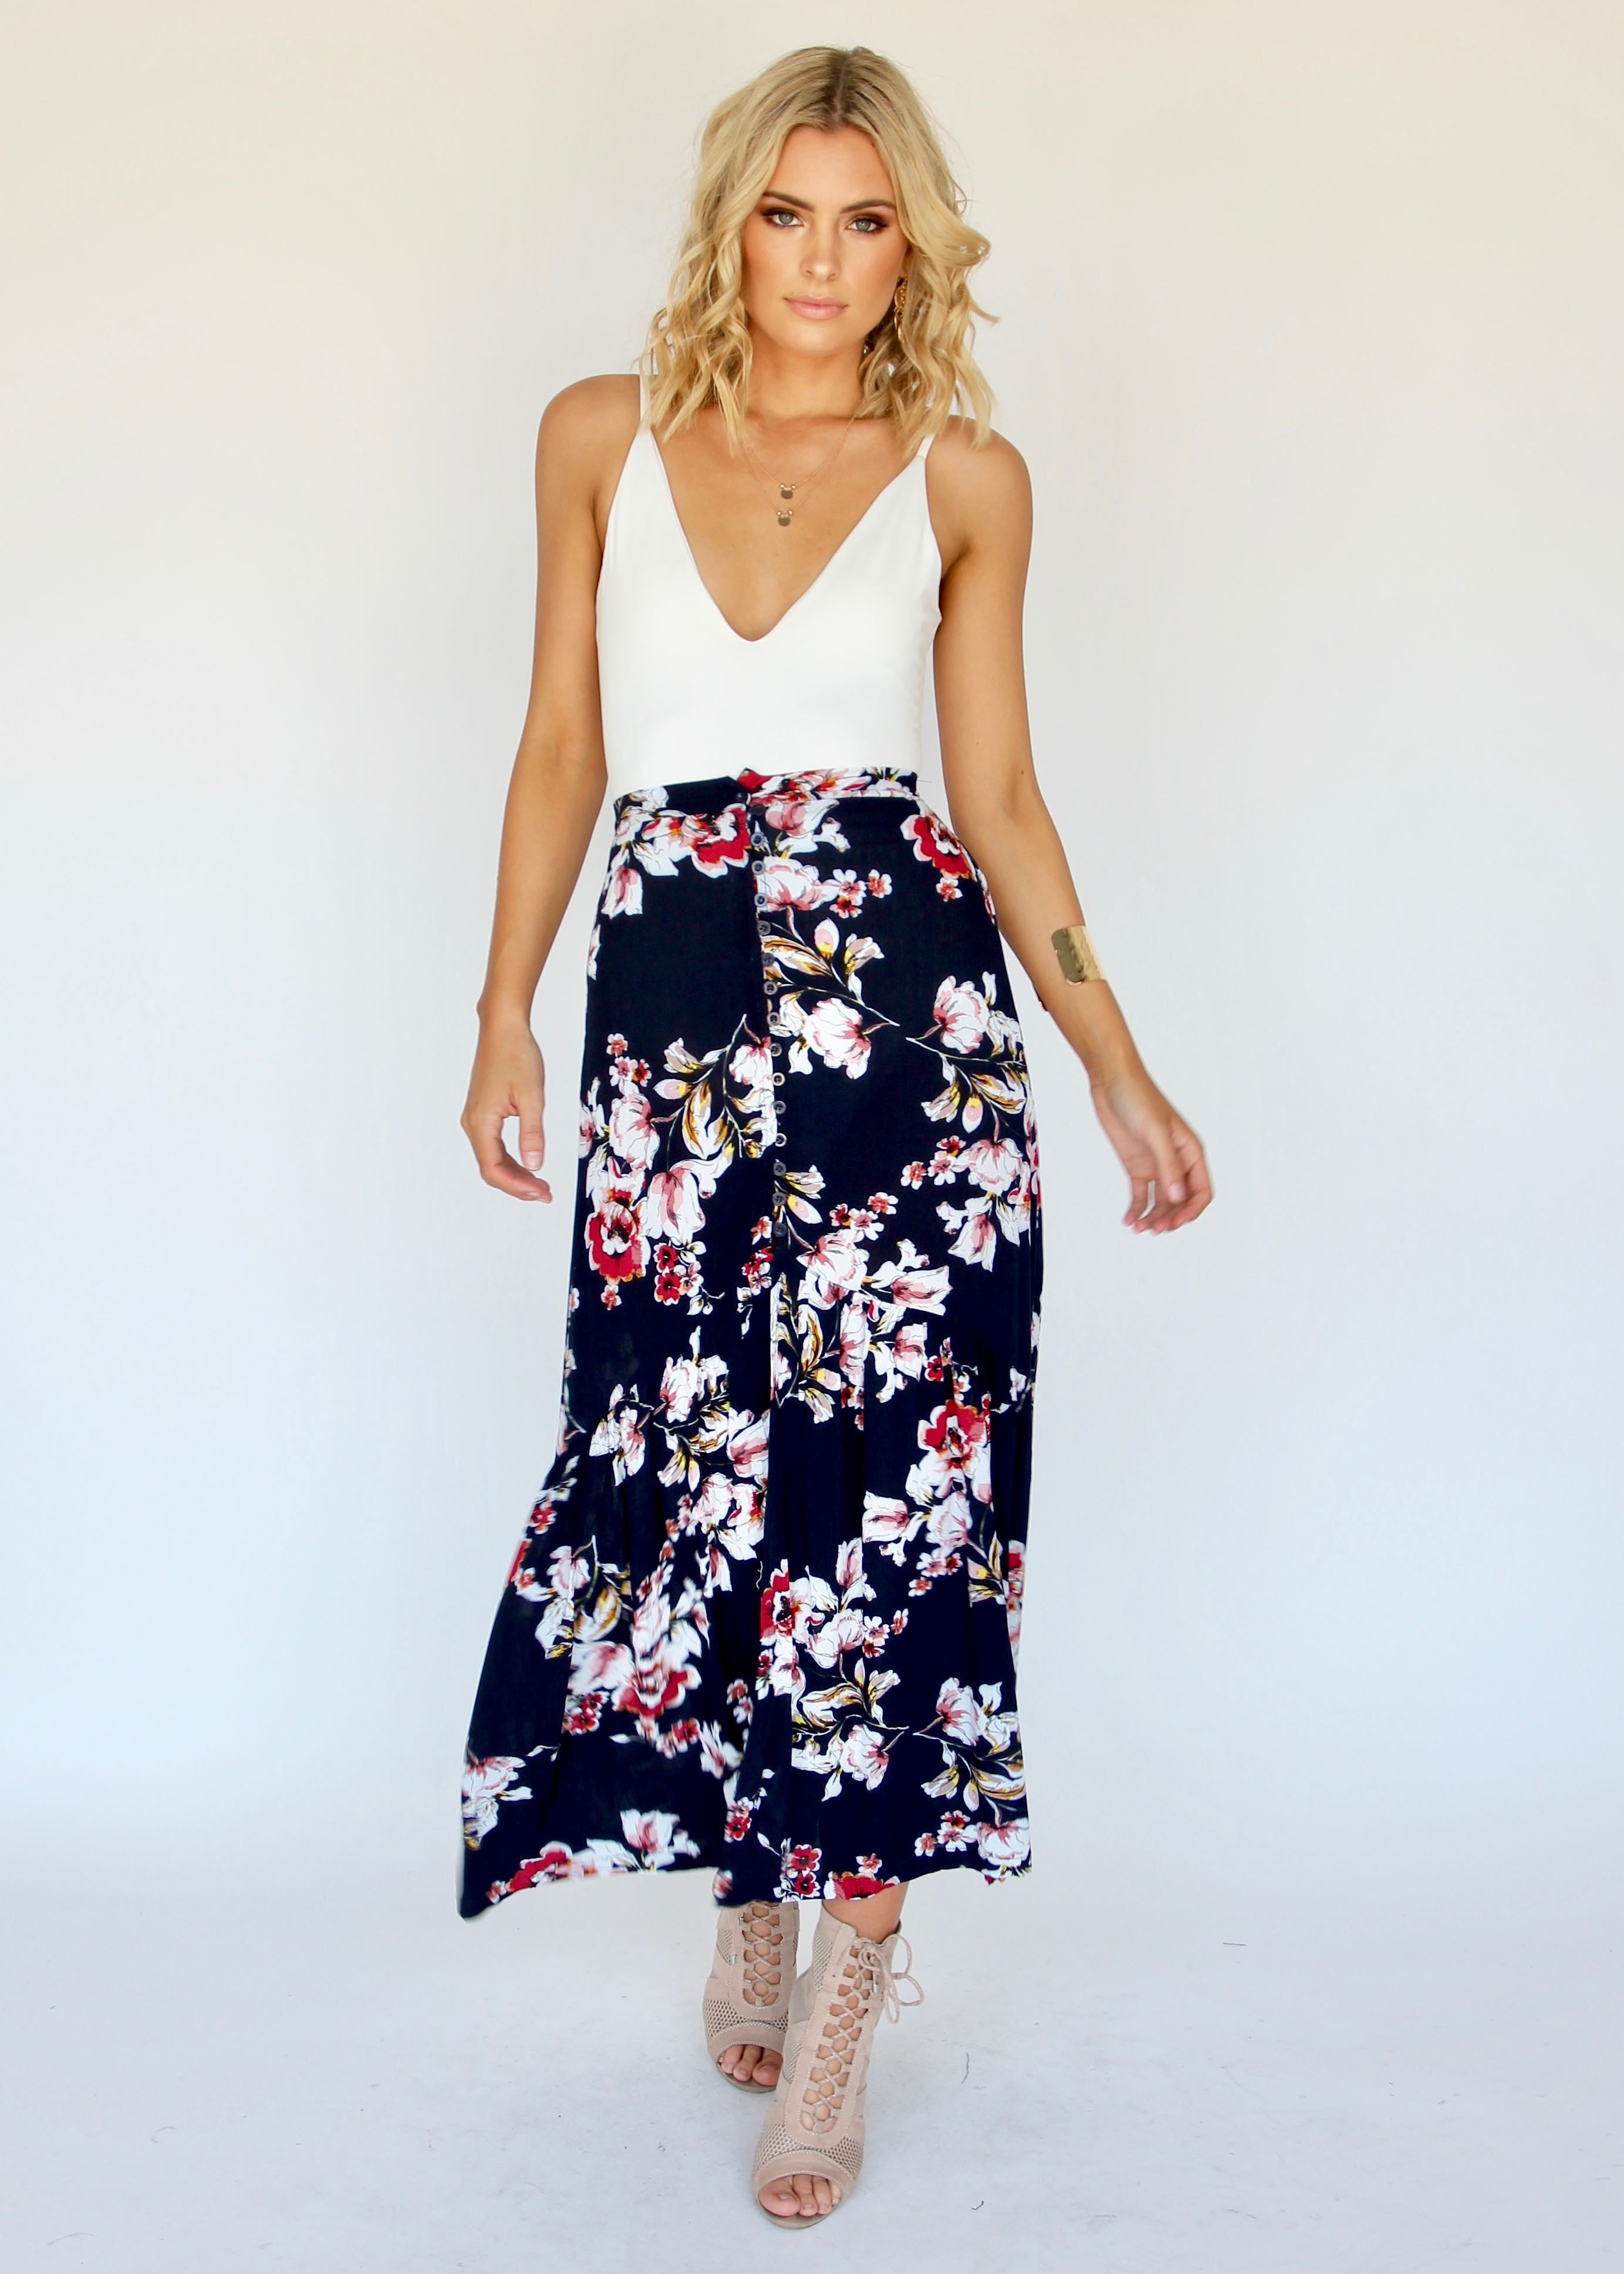 Simple Love Maxi Skirt - Navy Floral